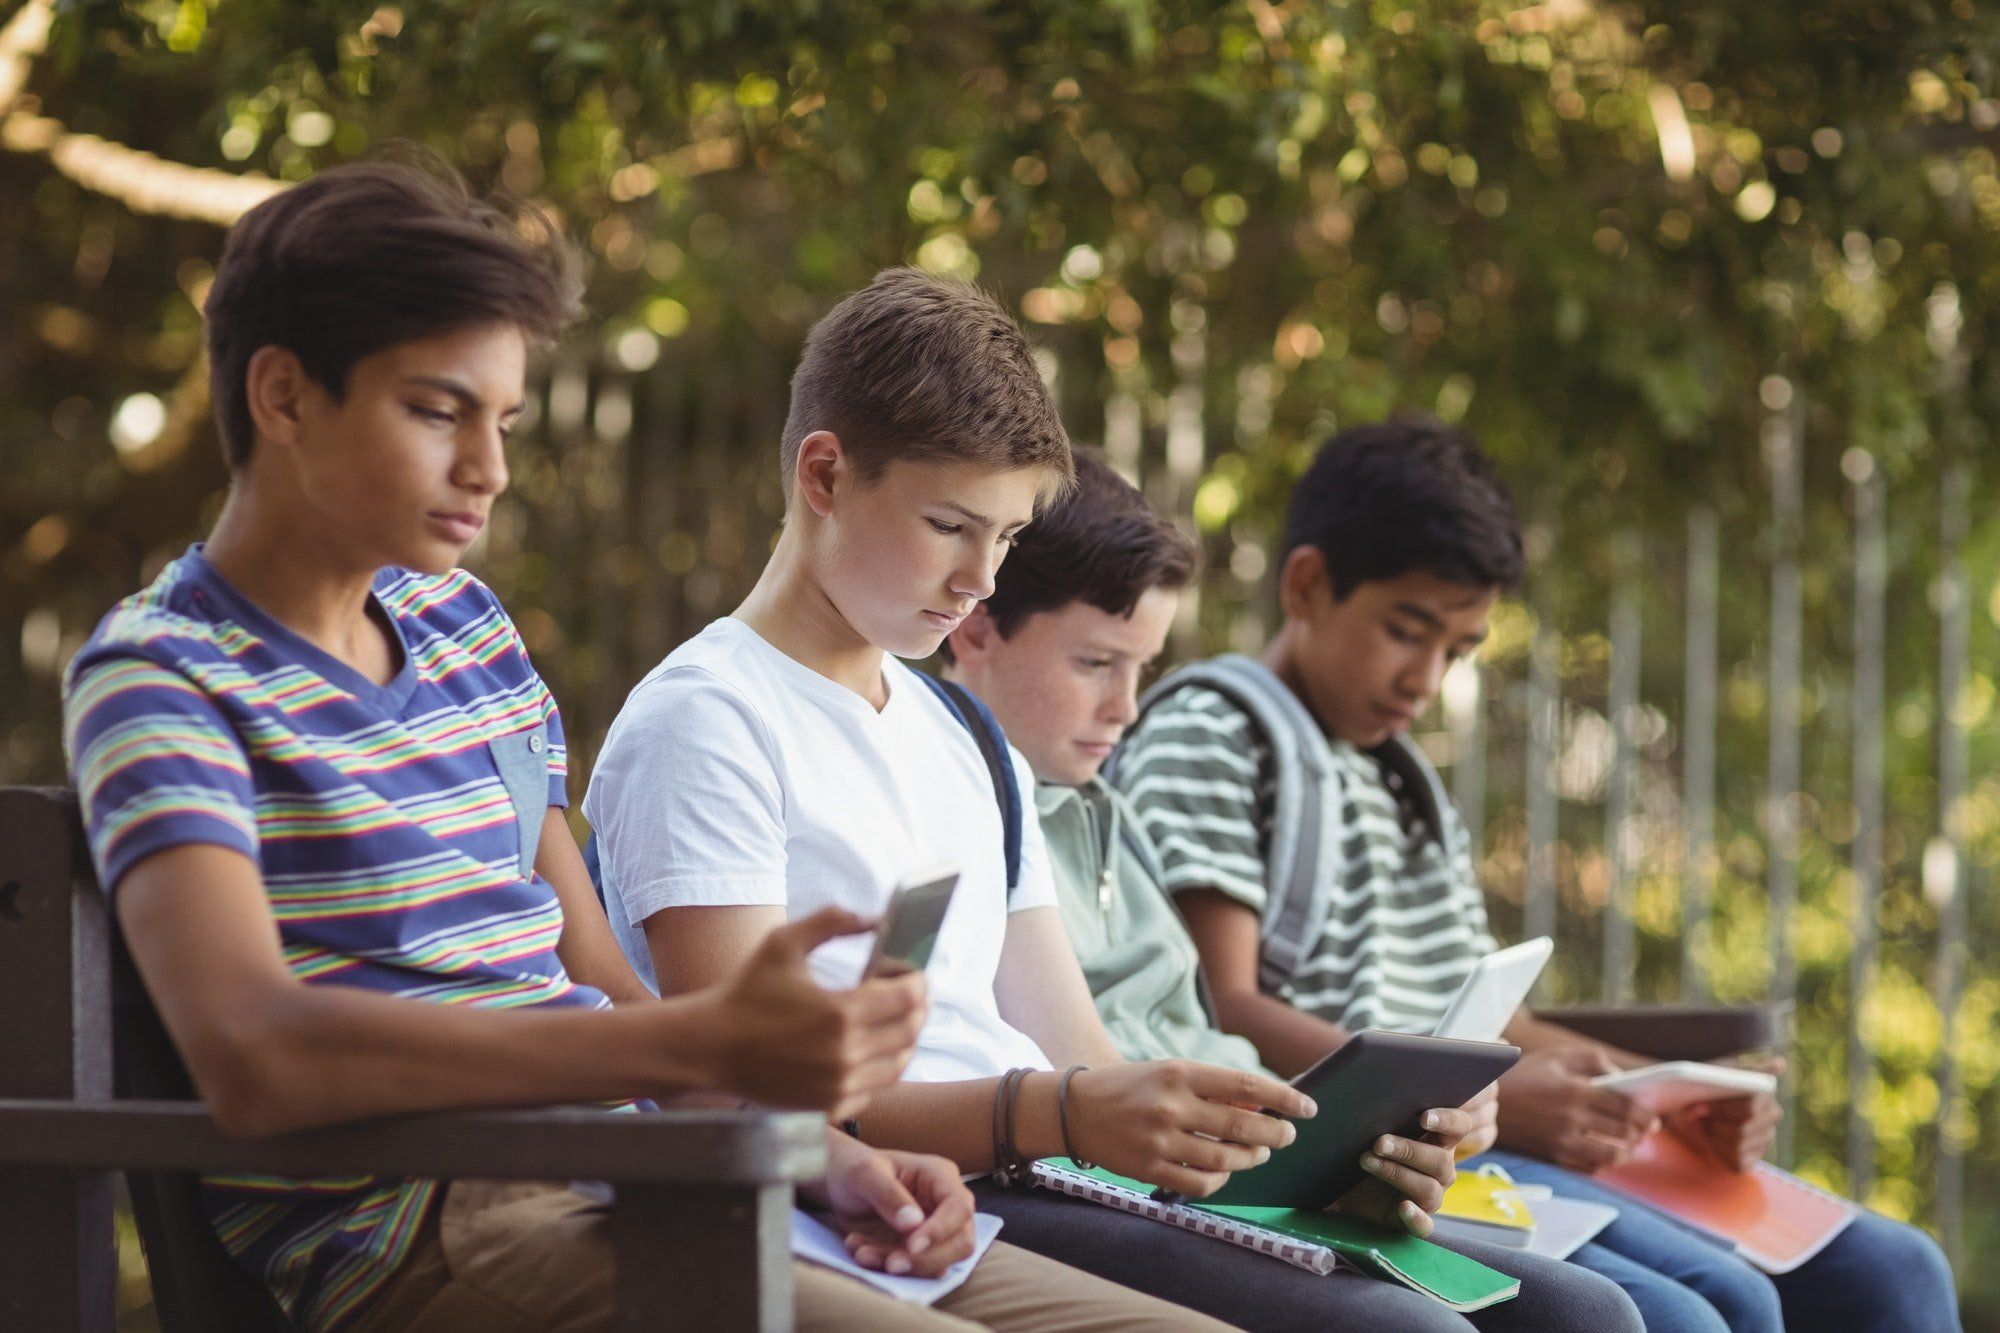 School kids using mobile phone and digital tablet on bench